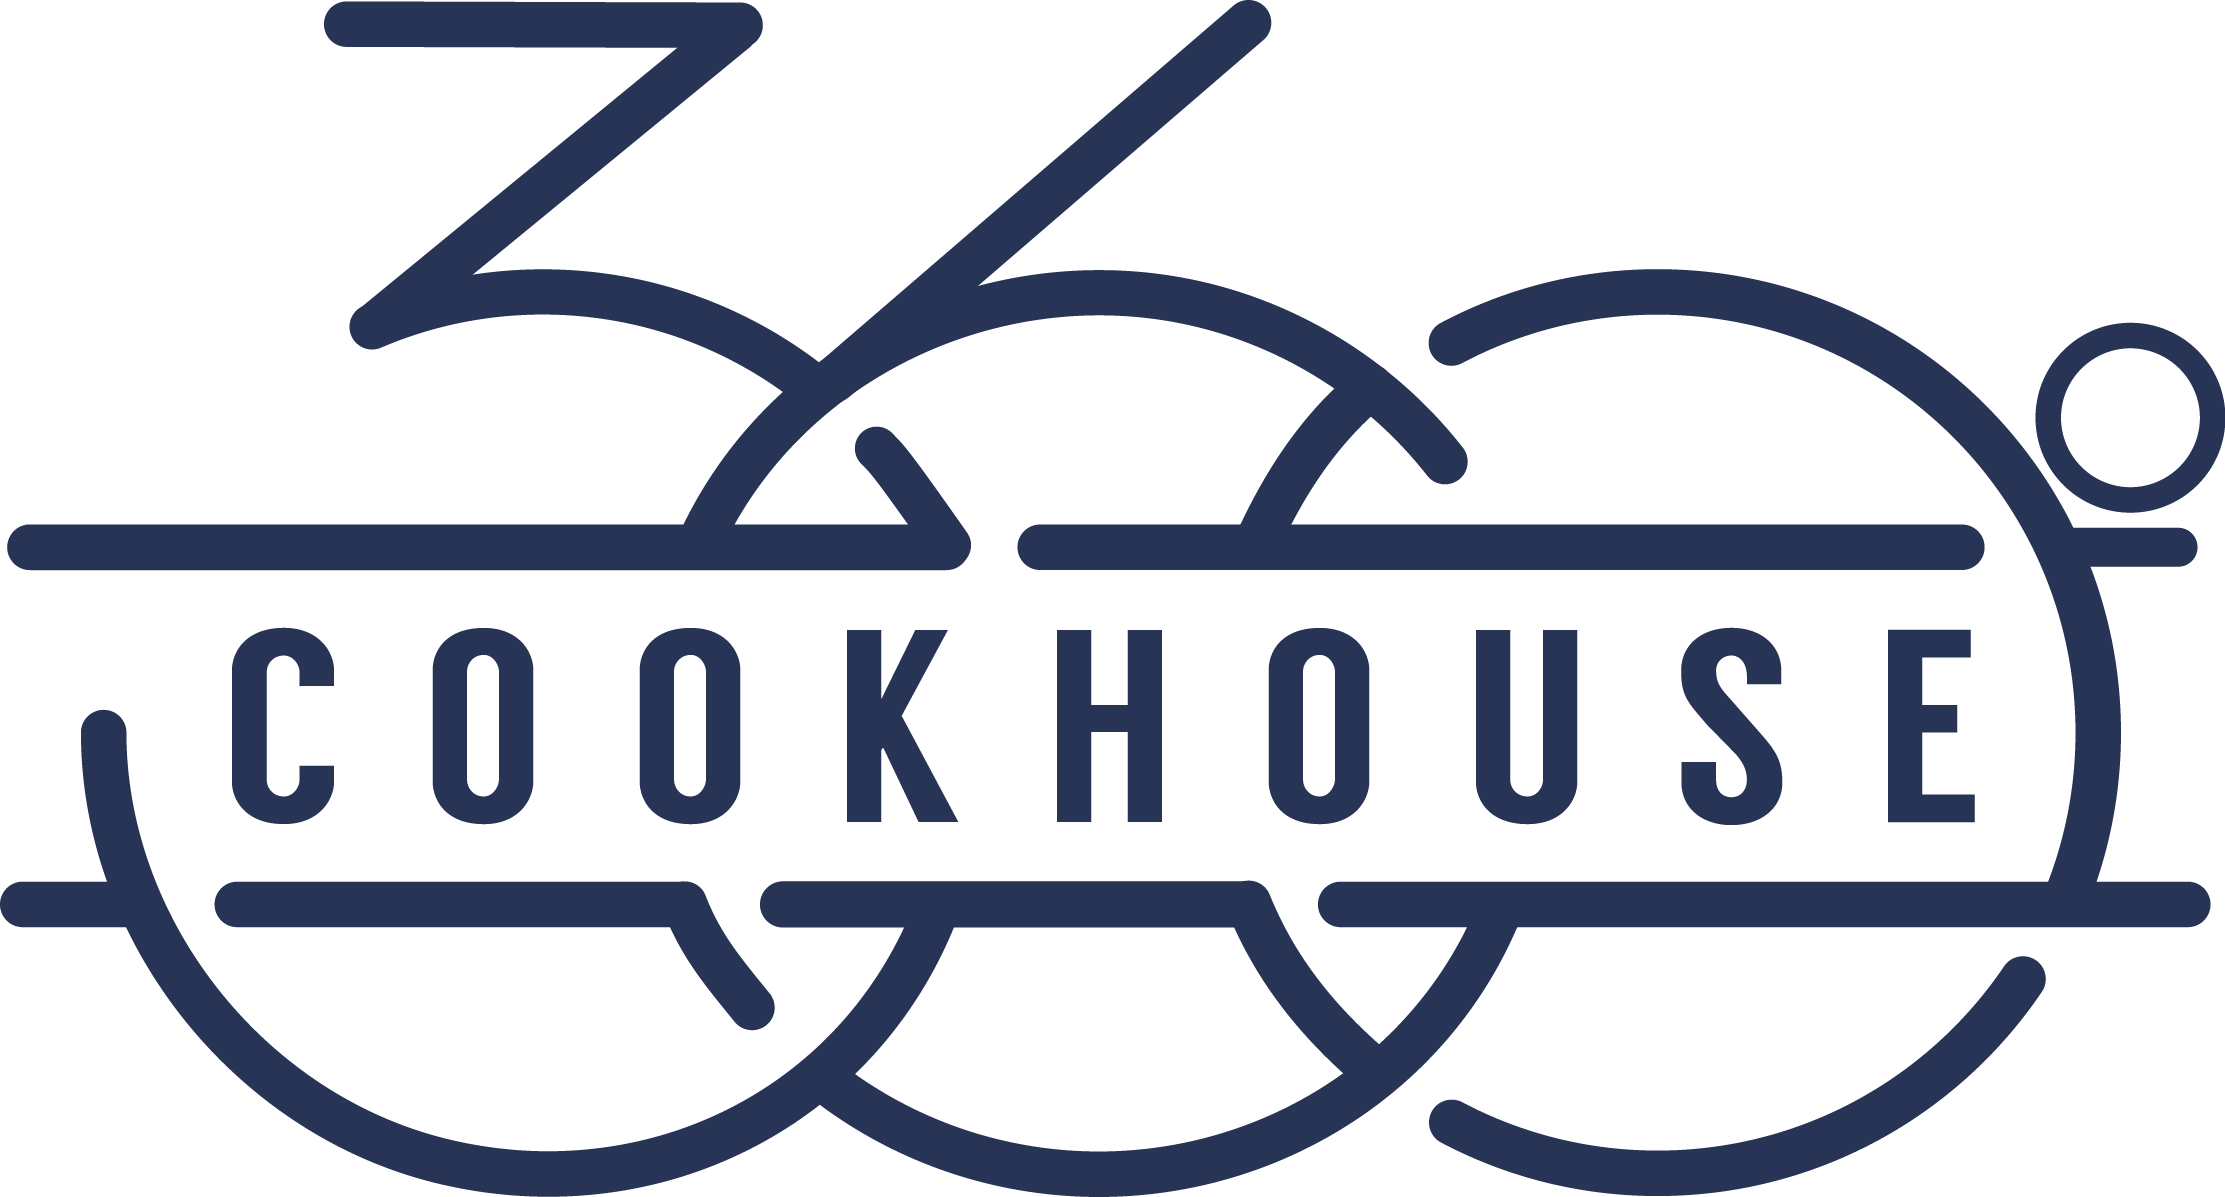 360 Cookhouse